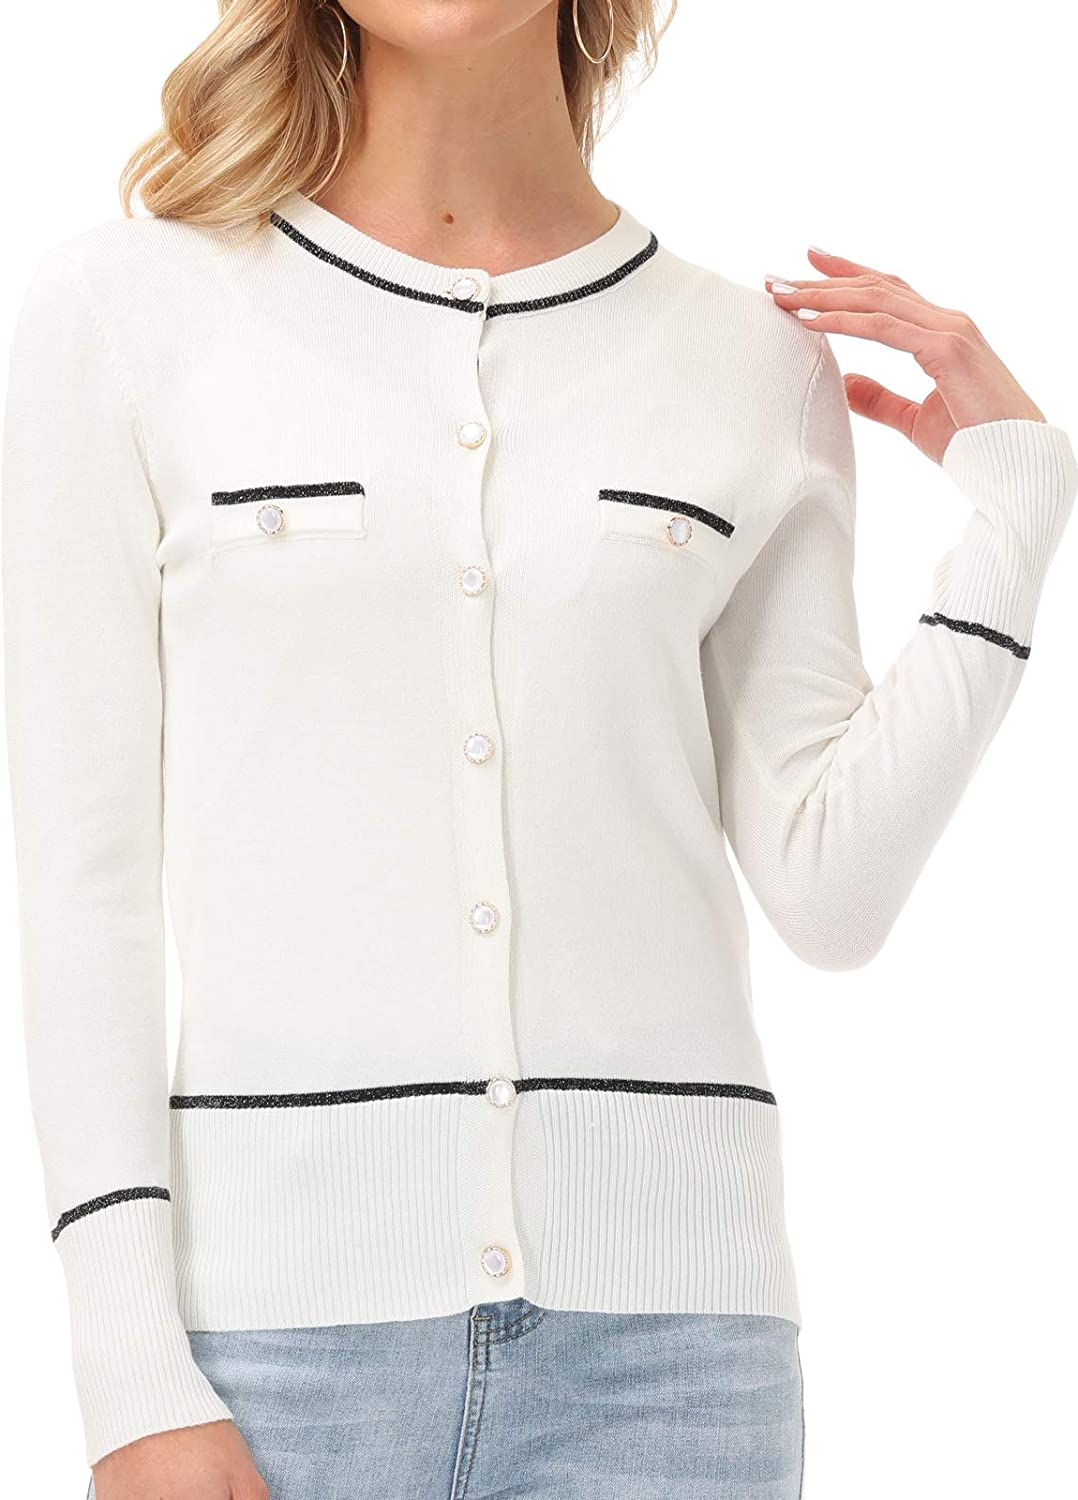 GRACE KARIN Womens Long Sleeve Button Down Crew Neck Classic Sweater Knit Cardigan